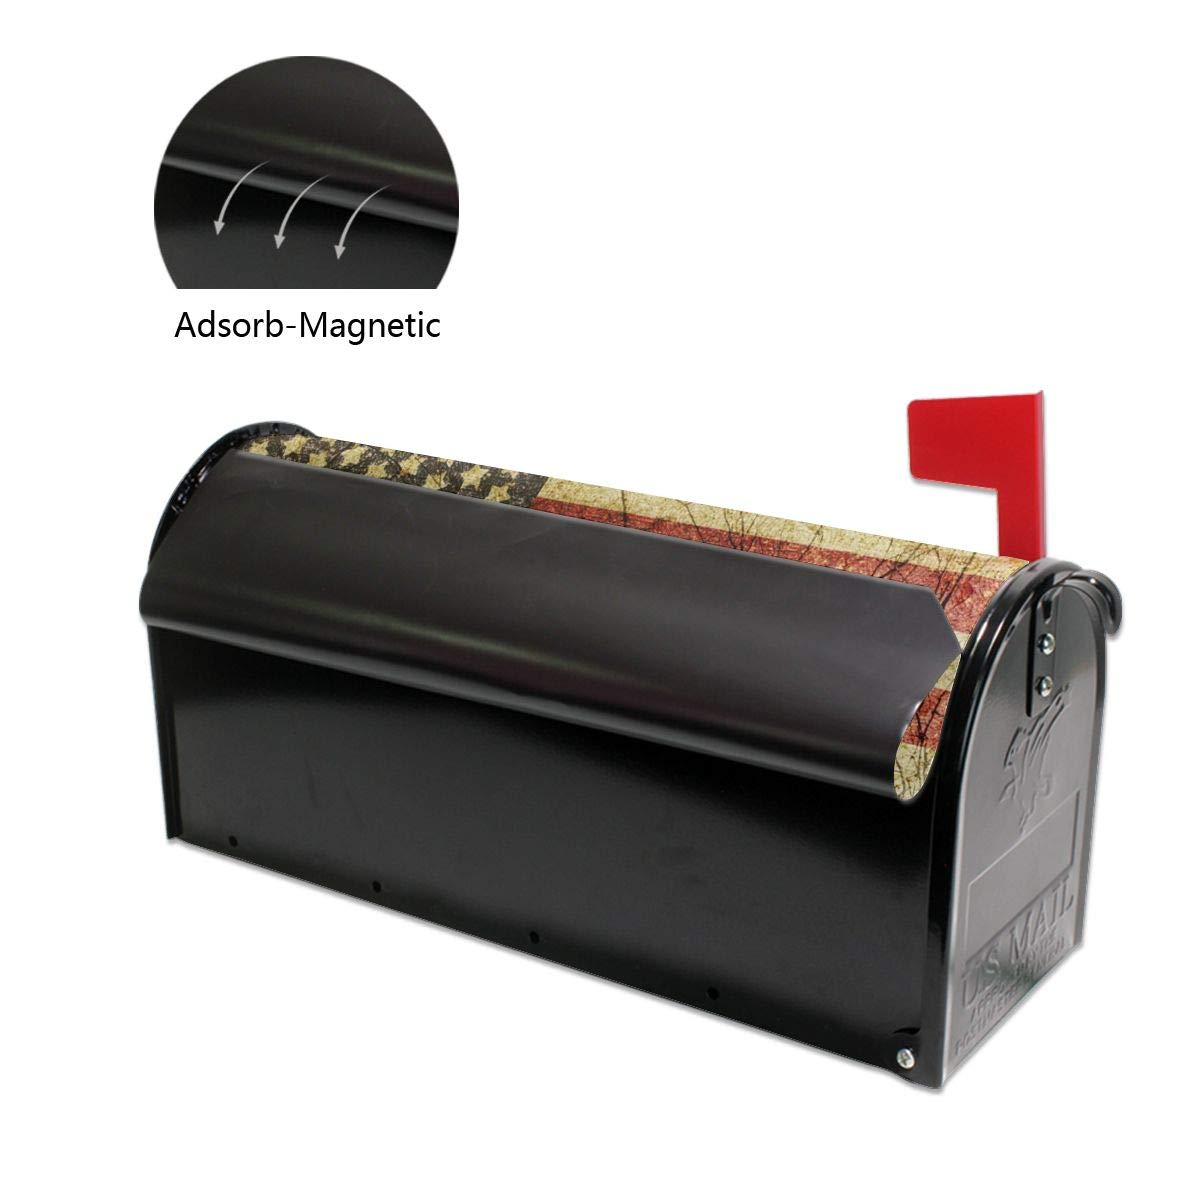 ShowRoom16 Custom Personalized Family Name Address Maibox Covers Wraps Magnetic Standard Mailbox Cover 21 x 18 inches